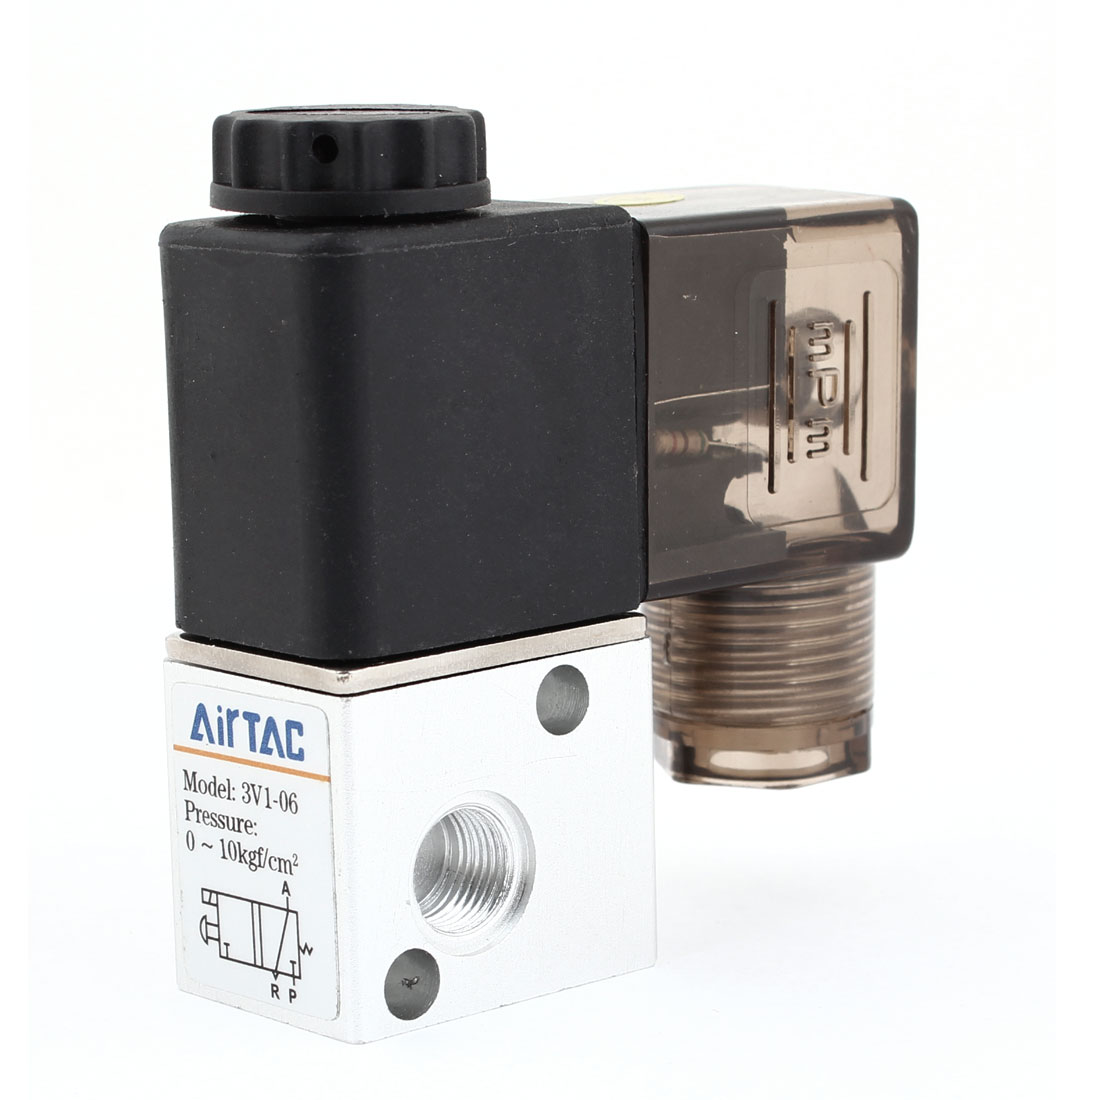 3V1-06 125mA DC 12V 2 Position 3 Way Pneumatic Solenoid Valve